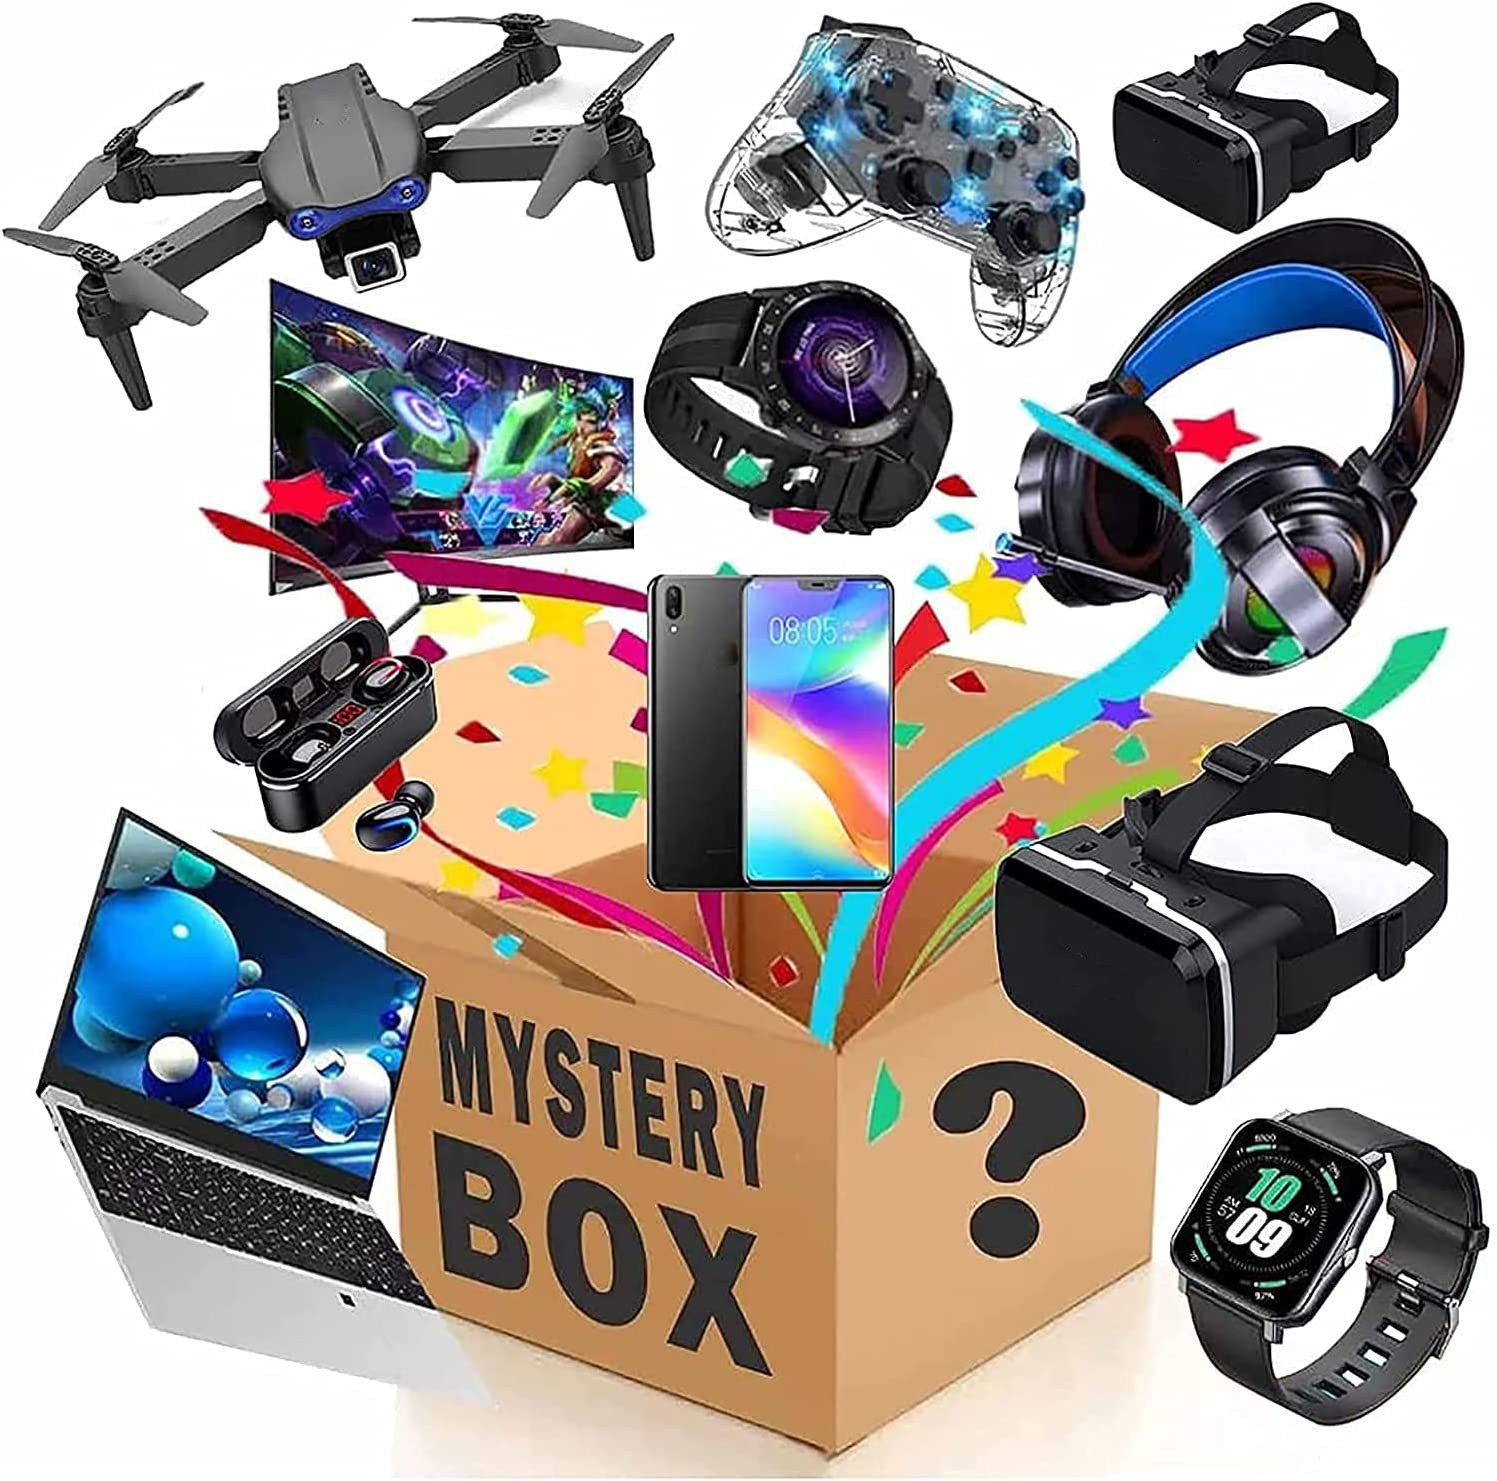 Mystery Box Indefinitely Denver Mall Electronic Lucky Cost Blind Super Boxes